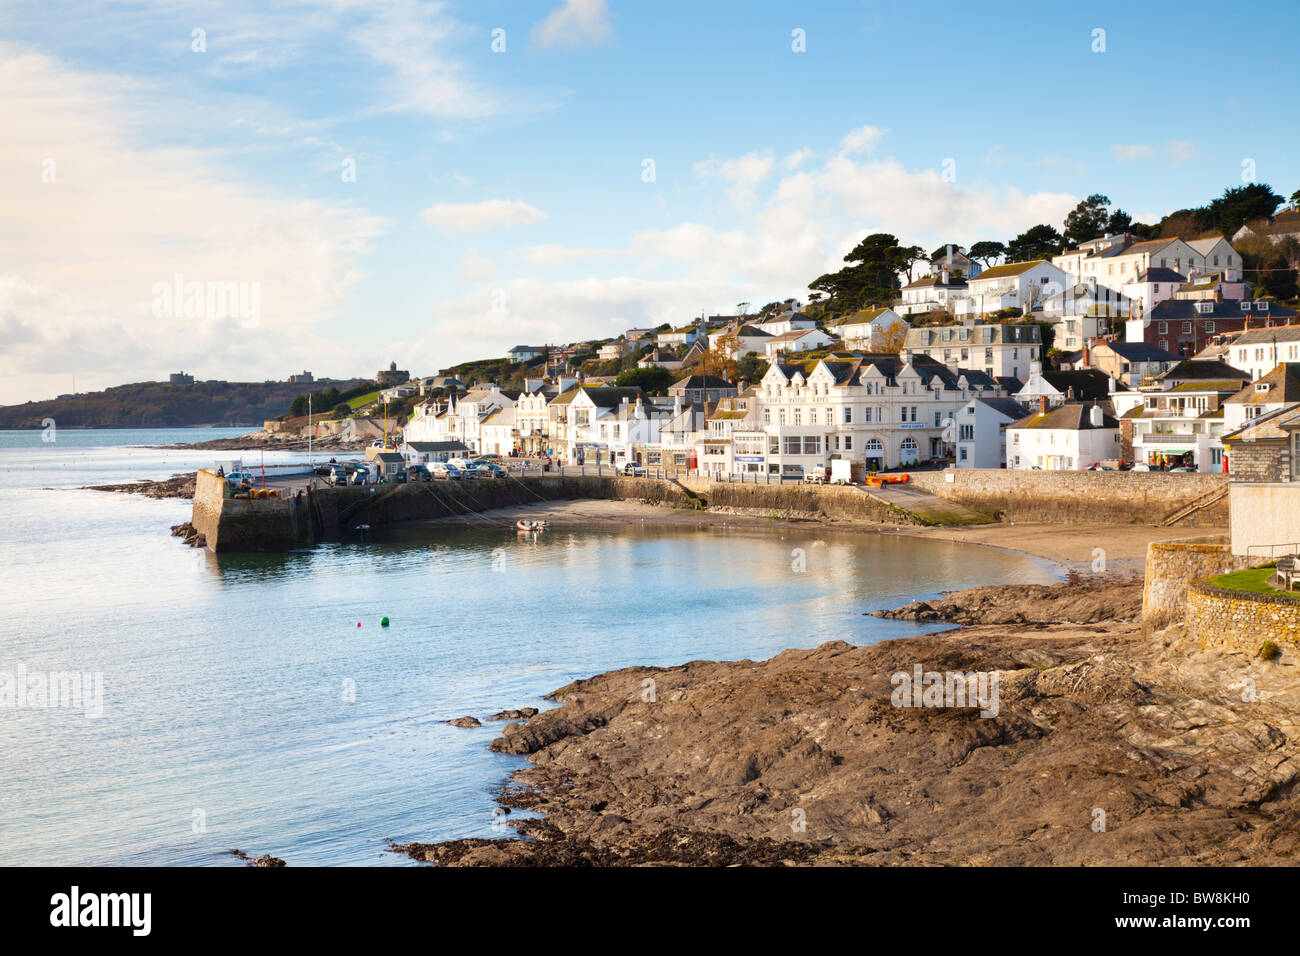 The seaside village of St Mawes Cornwall England - Stock Image